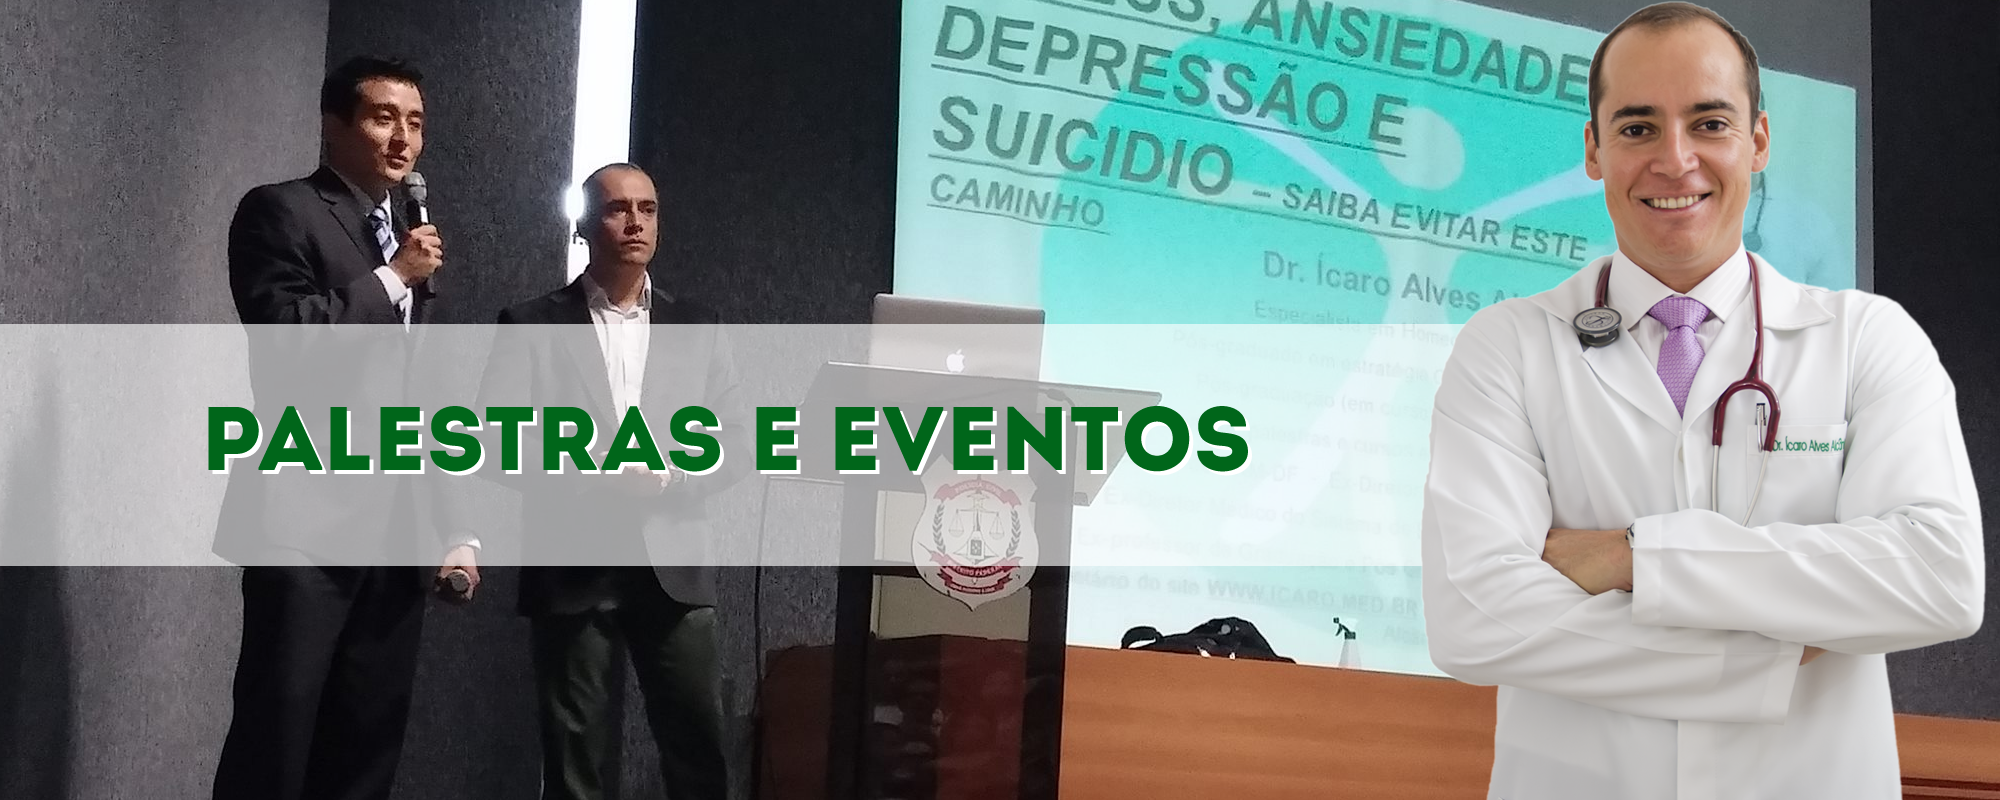 Dr. Ícaro no seu evento